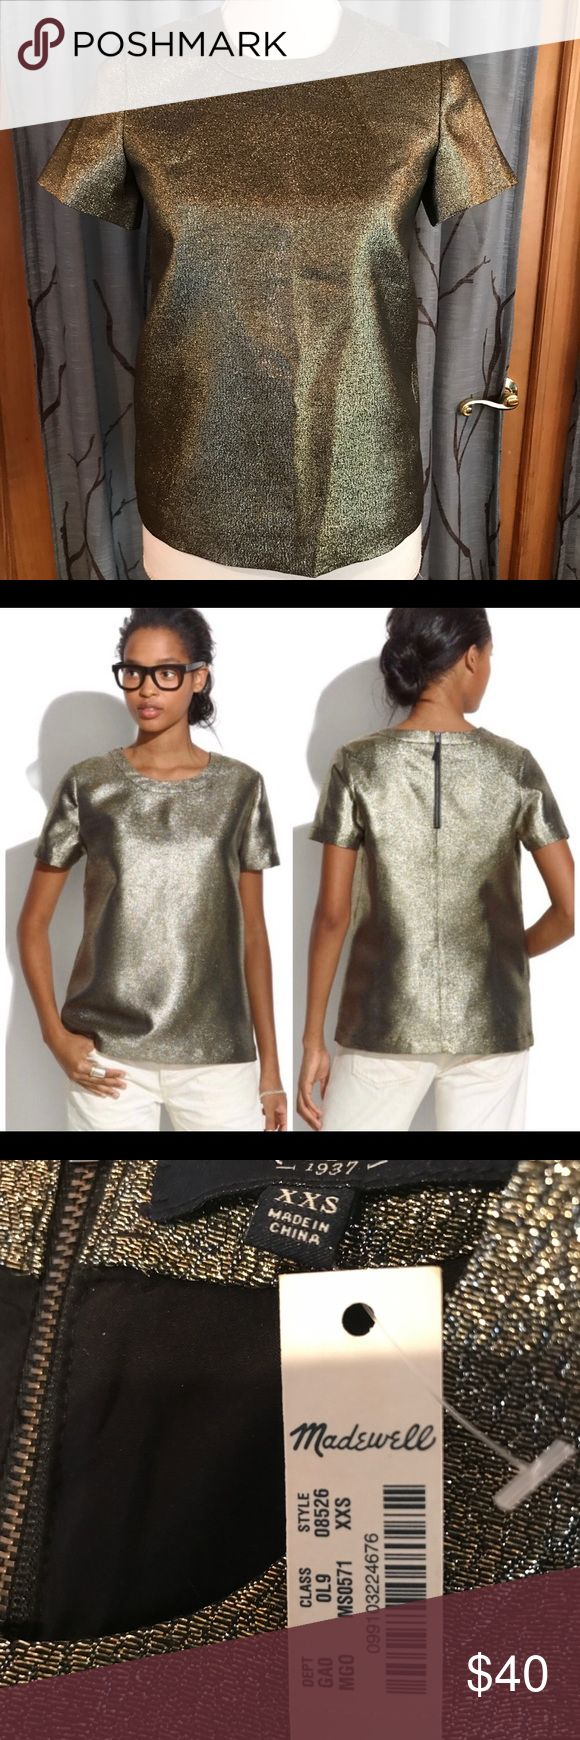 NWT. Madewell XXS Shimmer tee gold metallic NWT. Madewell size xxs Shimmer Tee. Rich gold Shimmer in a slightly boxy shape. A no brainer for holiday dressing. Tassled zipper closure at nape of neck, pullover top Madewell Tops